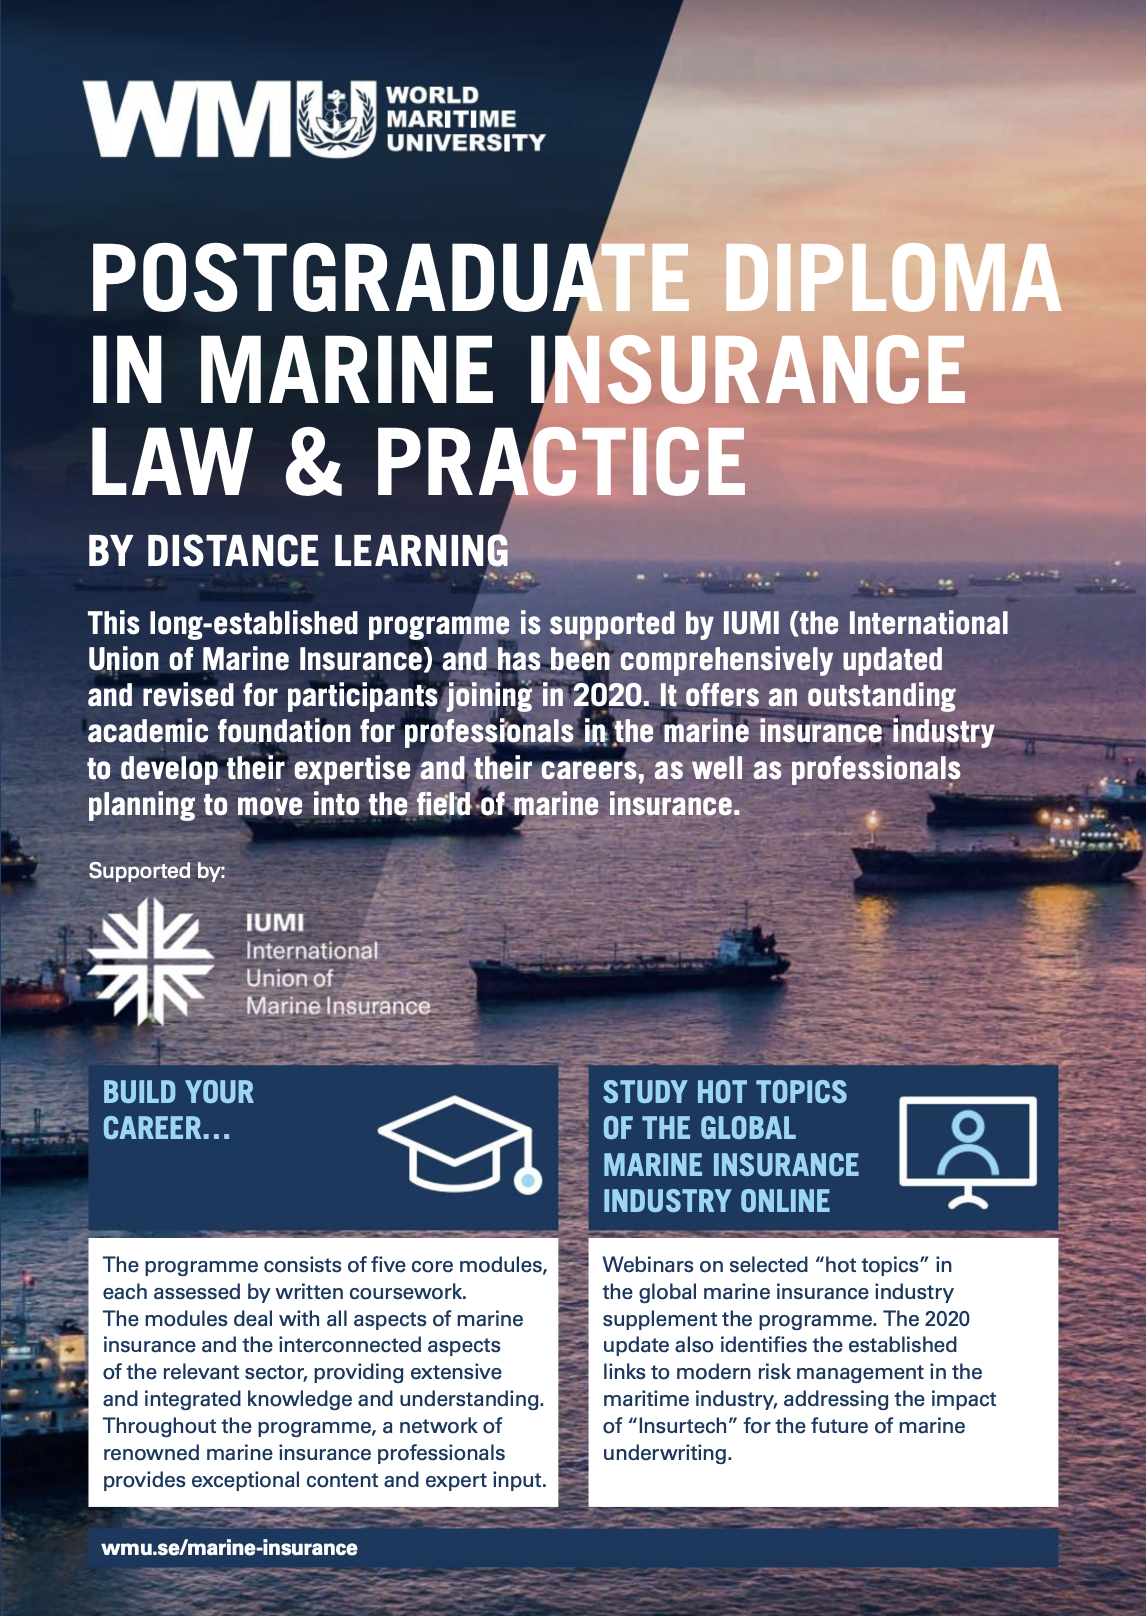 Marine Insurance Post Graduate Diploma - WMU